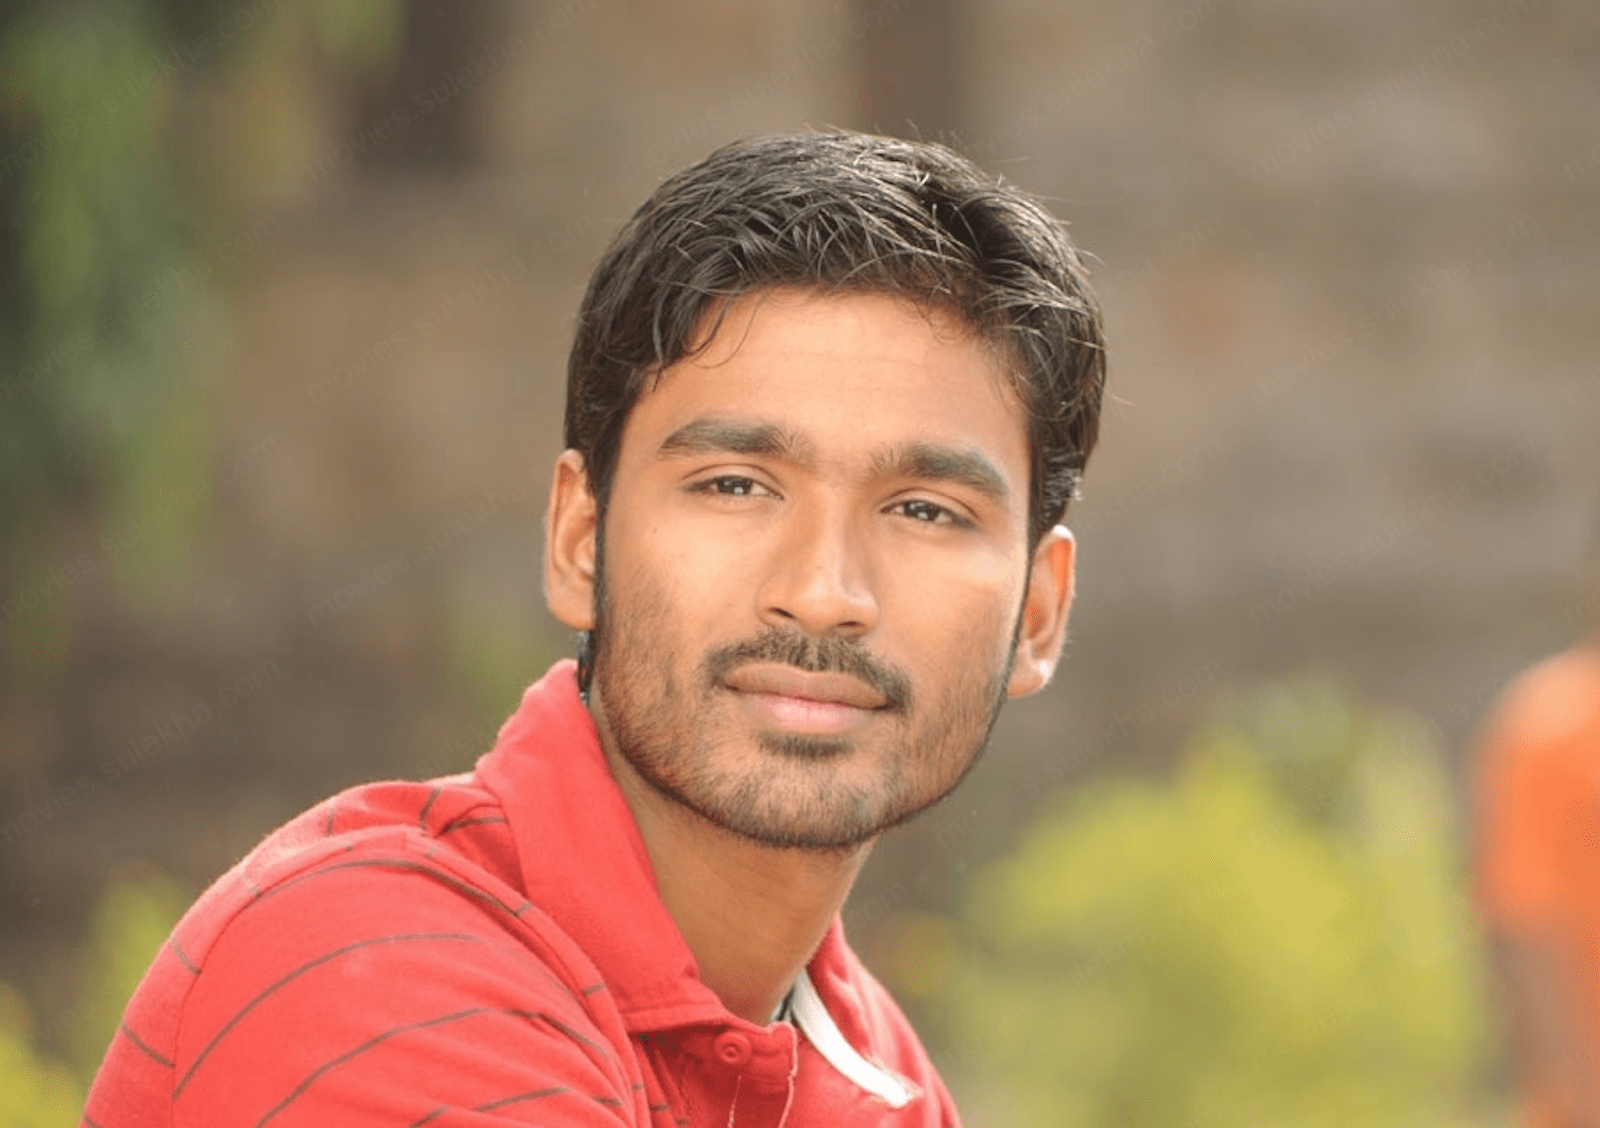 dhanush images, photos, latest hd wallpapers free download